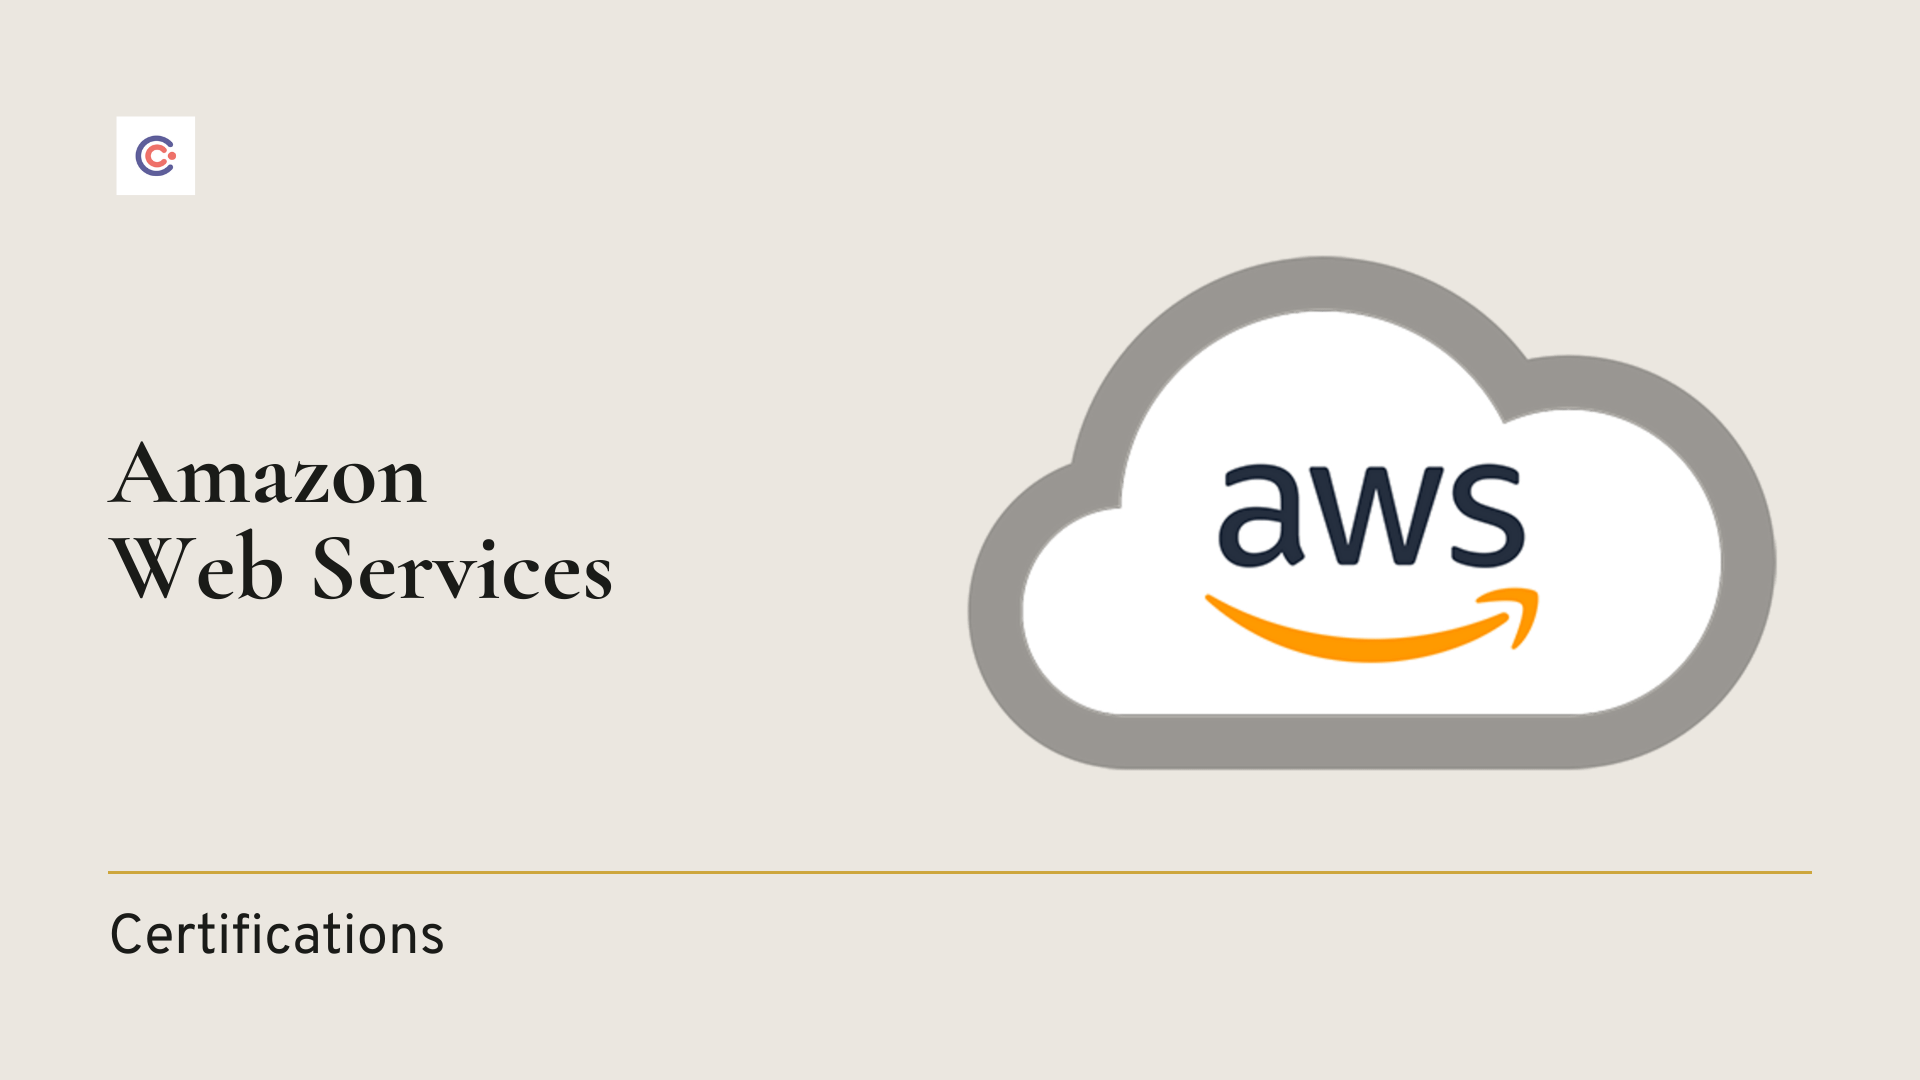 7 Best AWS Certifications & Training - Learn AWS Online